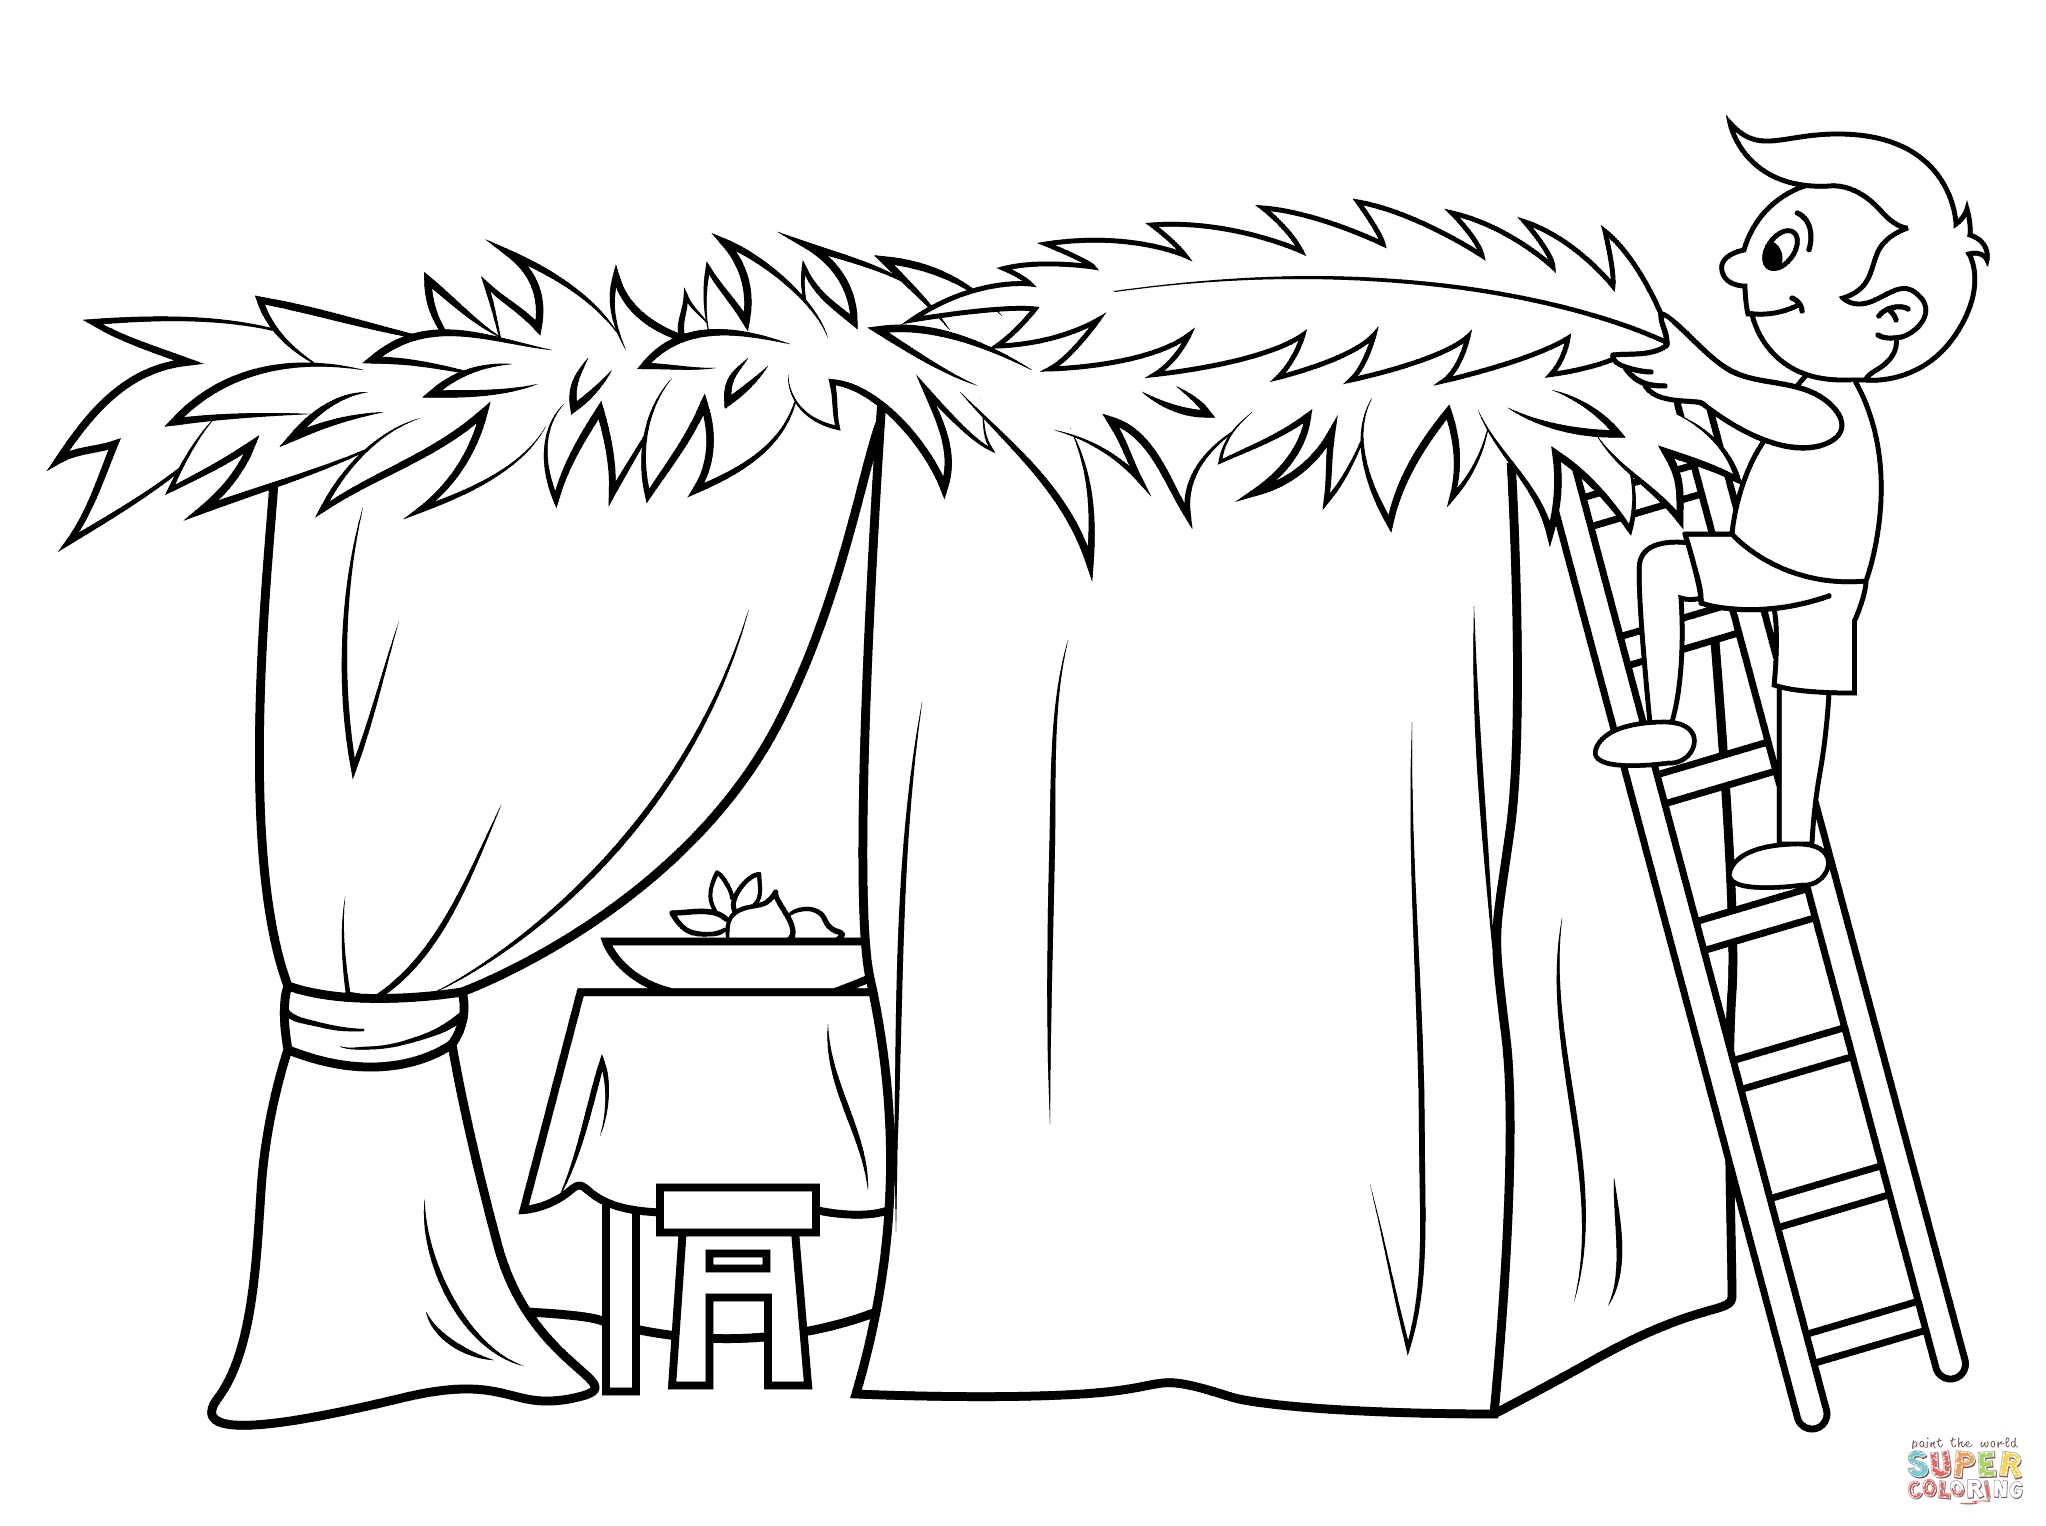 2046x1526 Sukkot Coloring Pages Inspirational Boy Builds A Sukkah Coloring